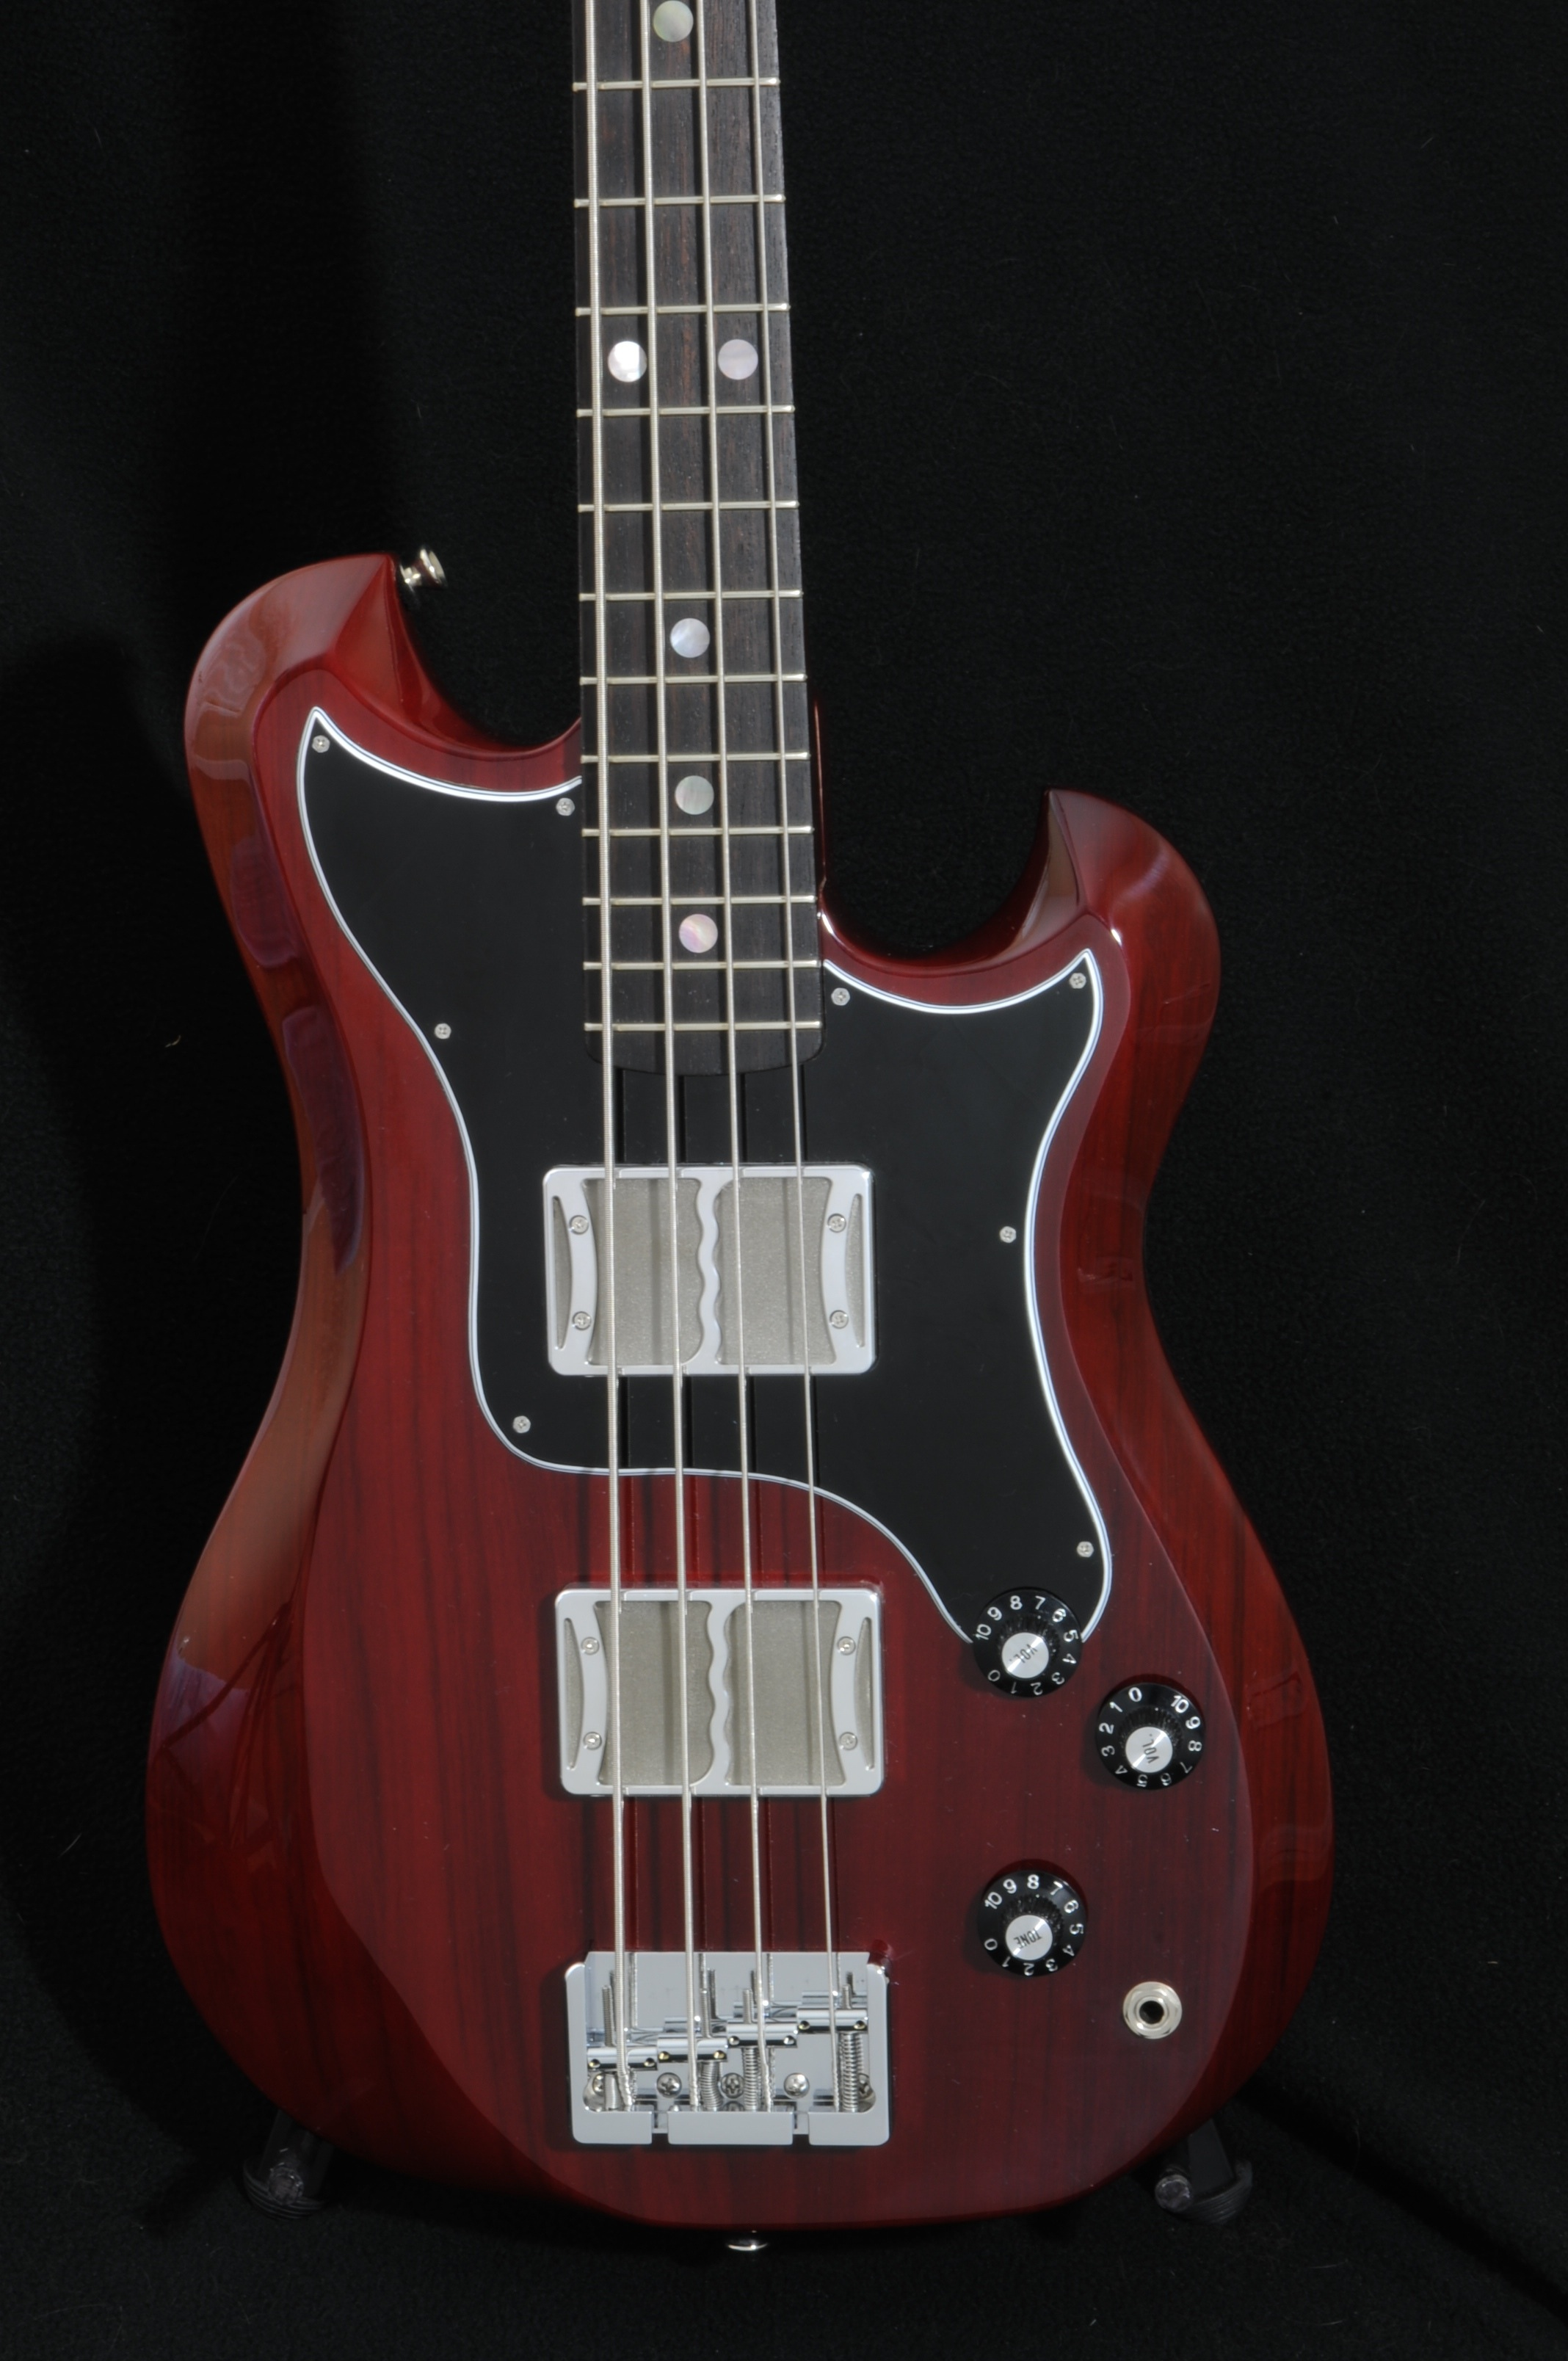 Ronin Songbird BASS – BRAND NEW! Authorized Dealer